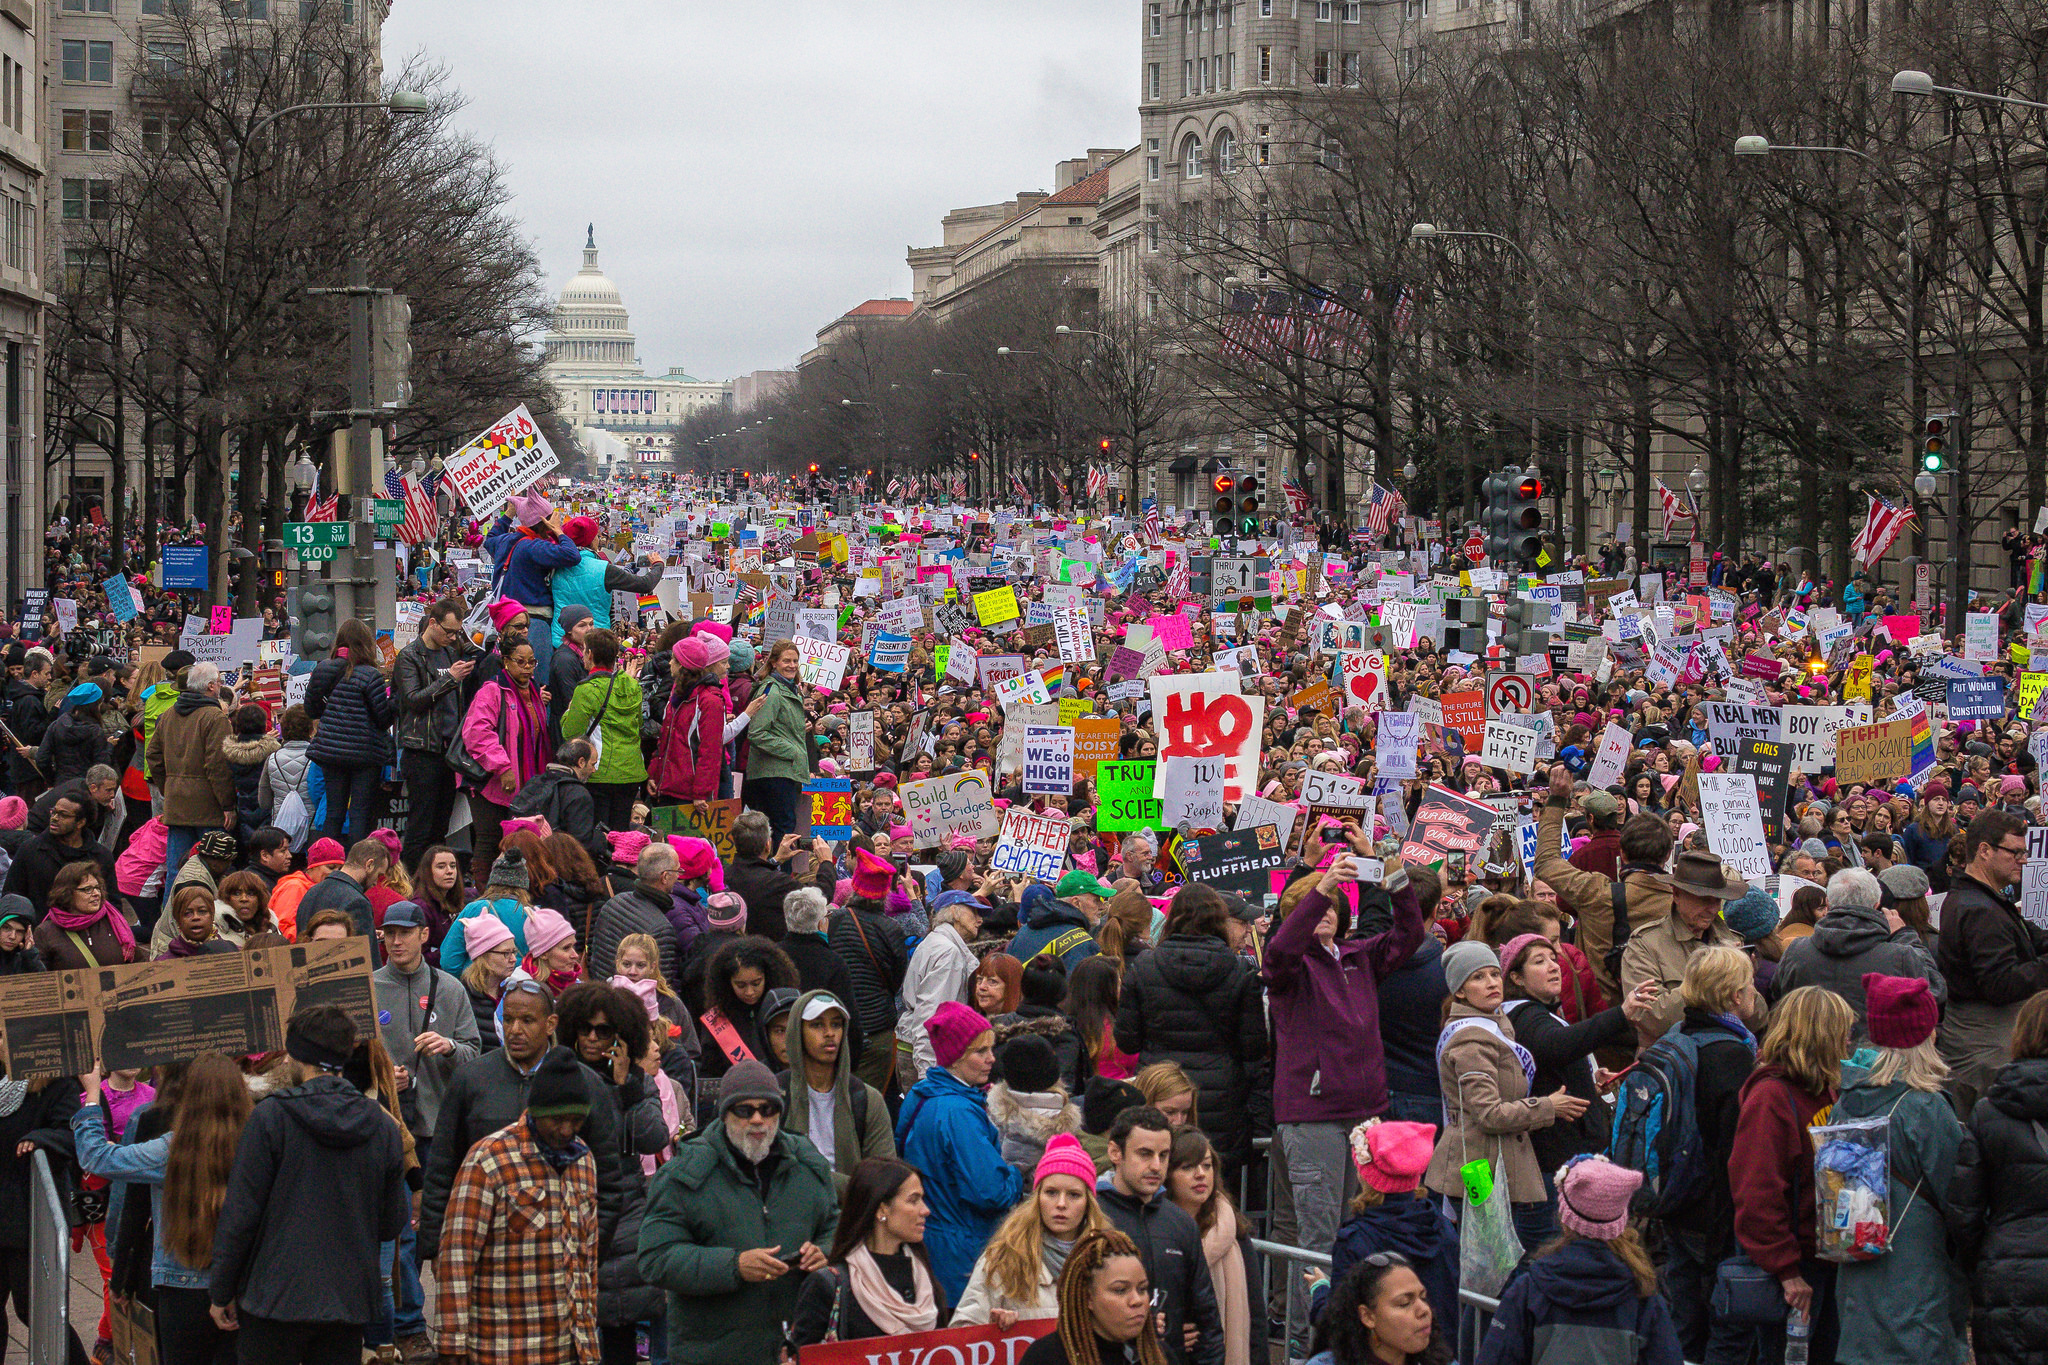 Women's March Photo by Mobilus in Mobili Flickr